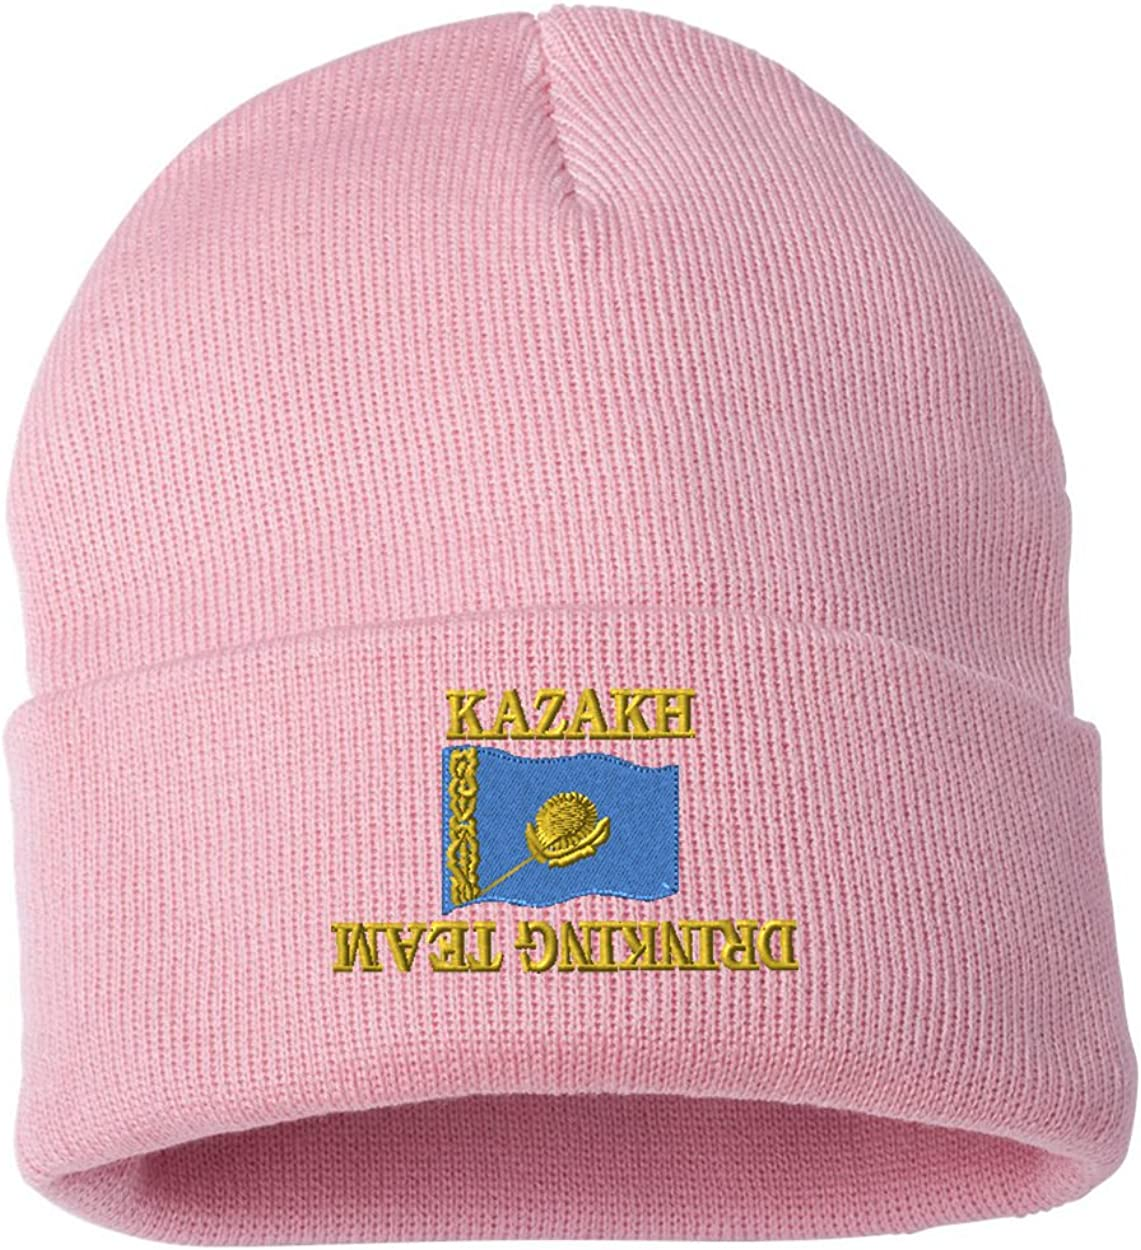 KAZAKH DRINKING TEAM Custom Personalized Embroidery Embroidered Beanie